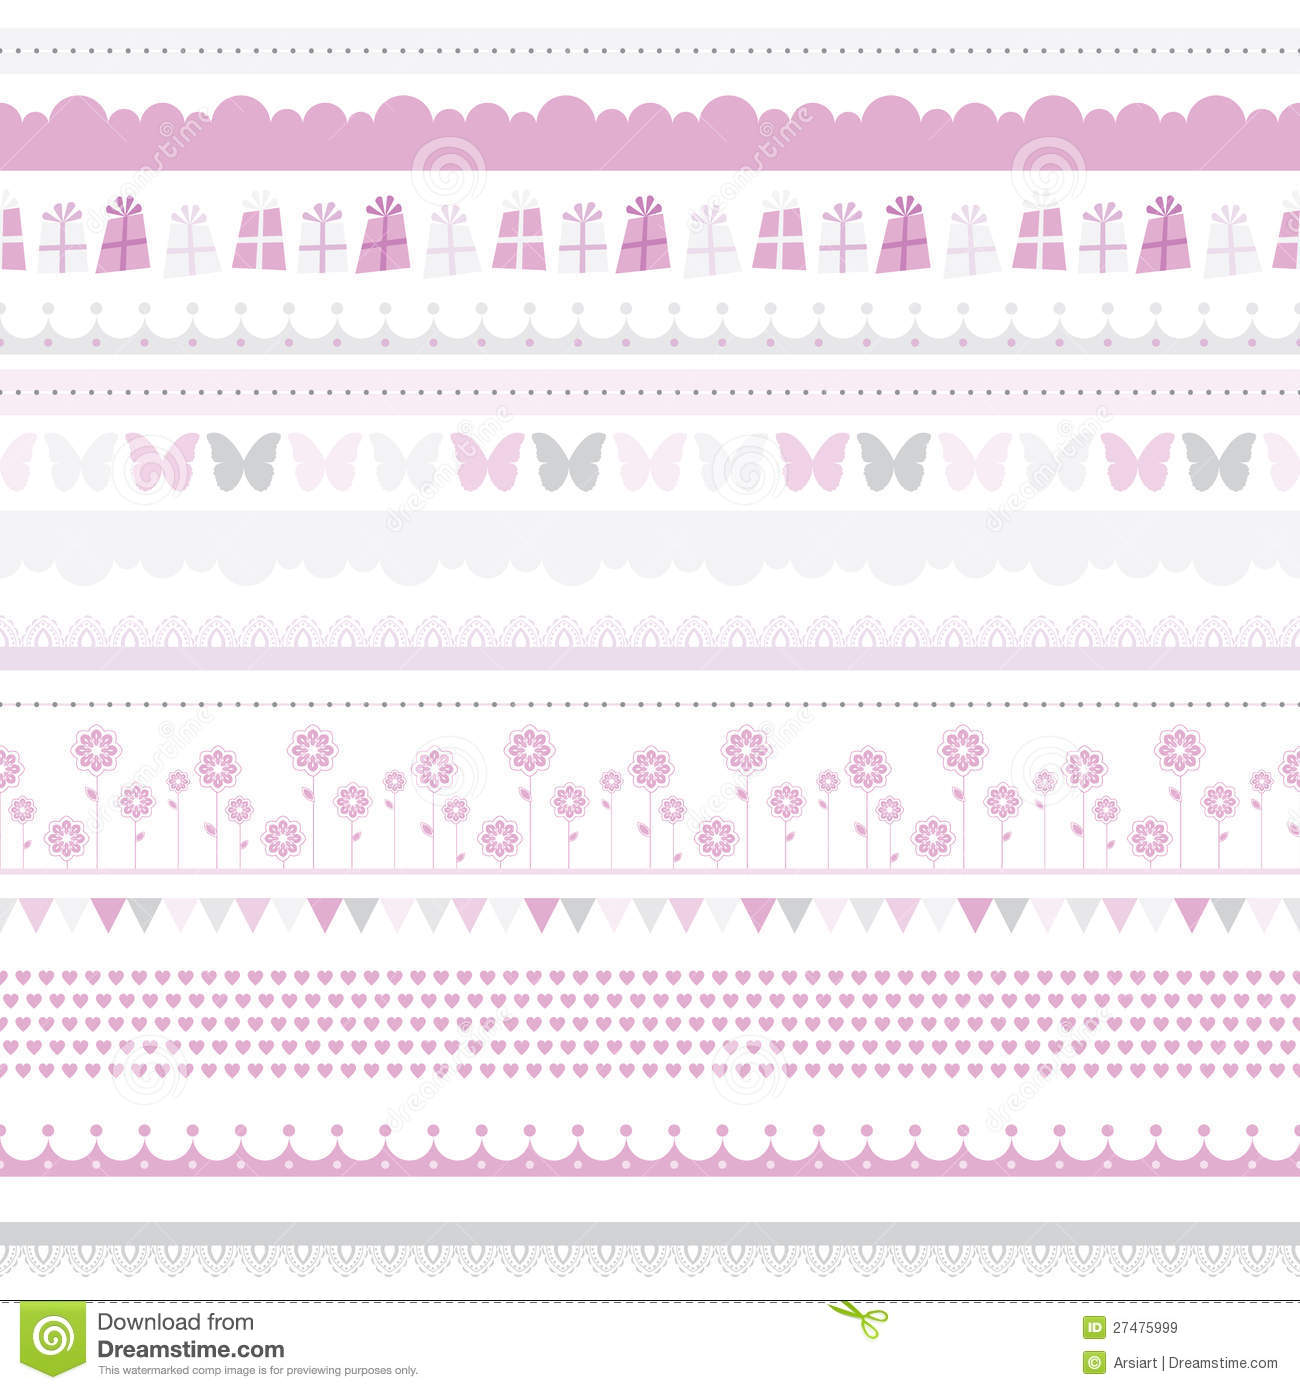 birthday borders free downloads ; cute-baby-seamless-border-child-birthday-pattern-27475999